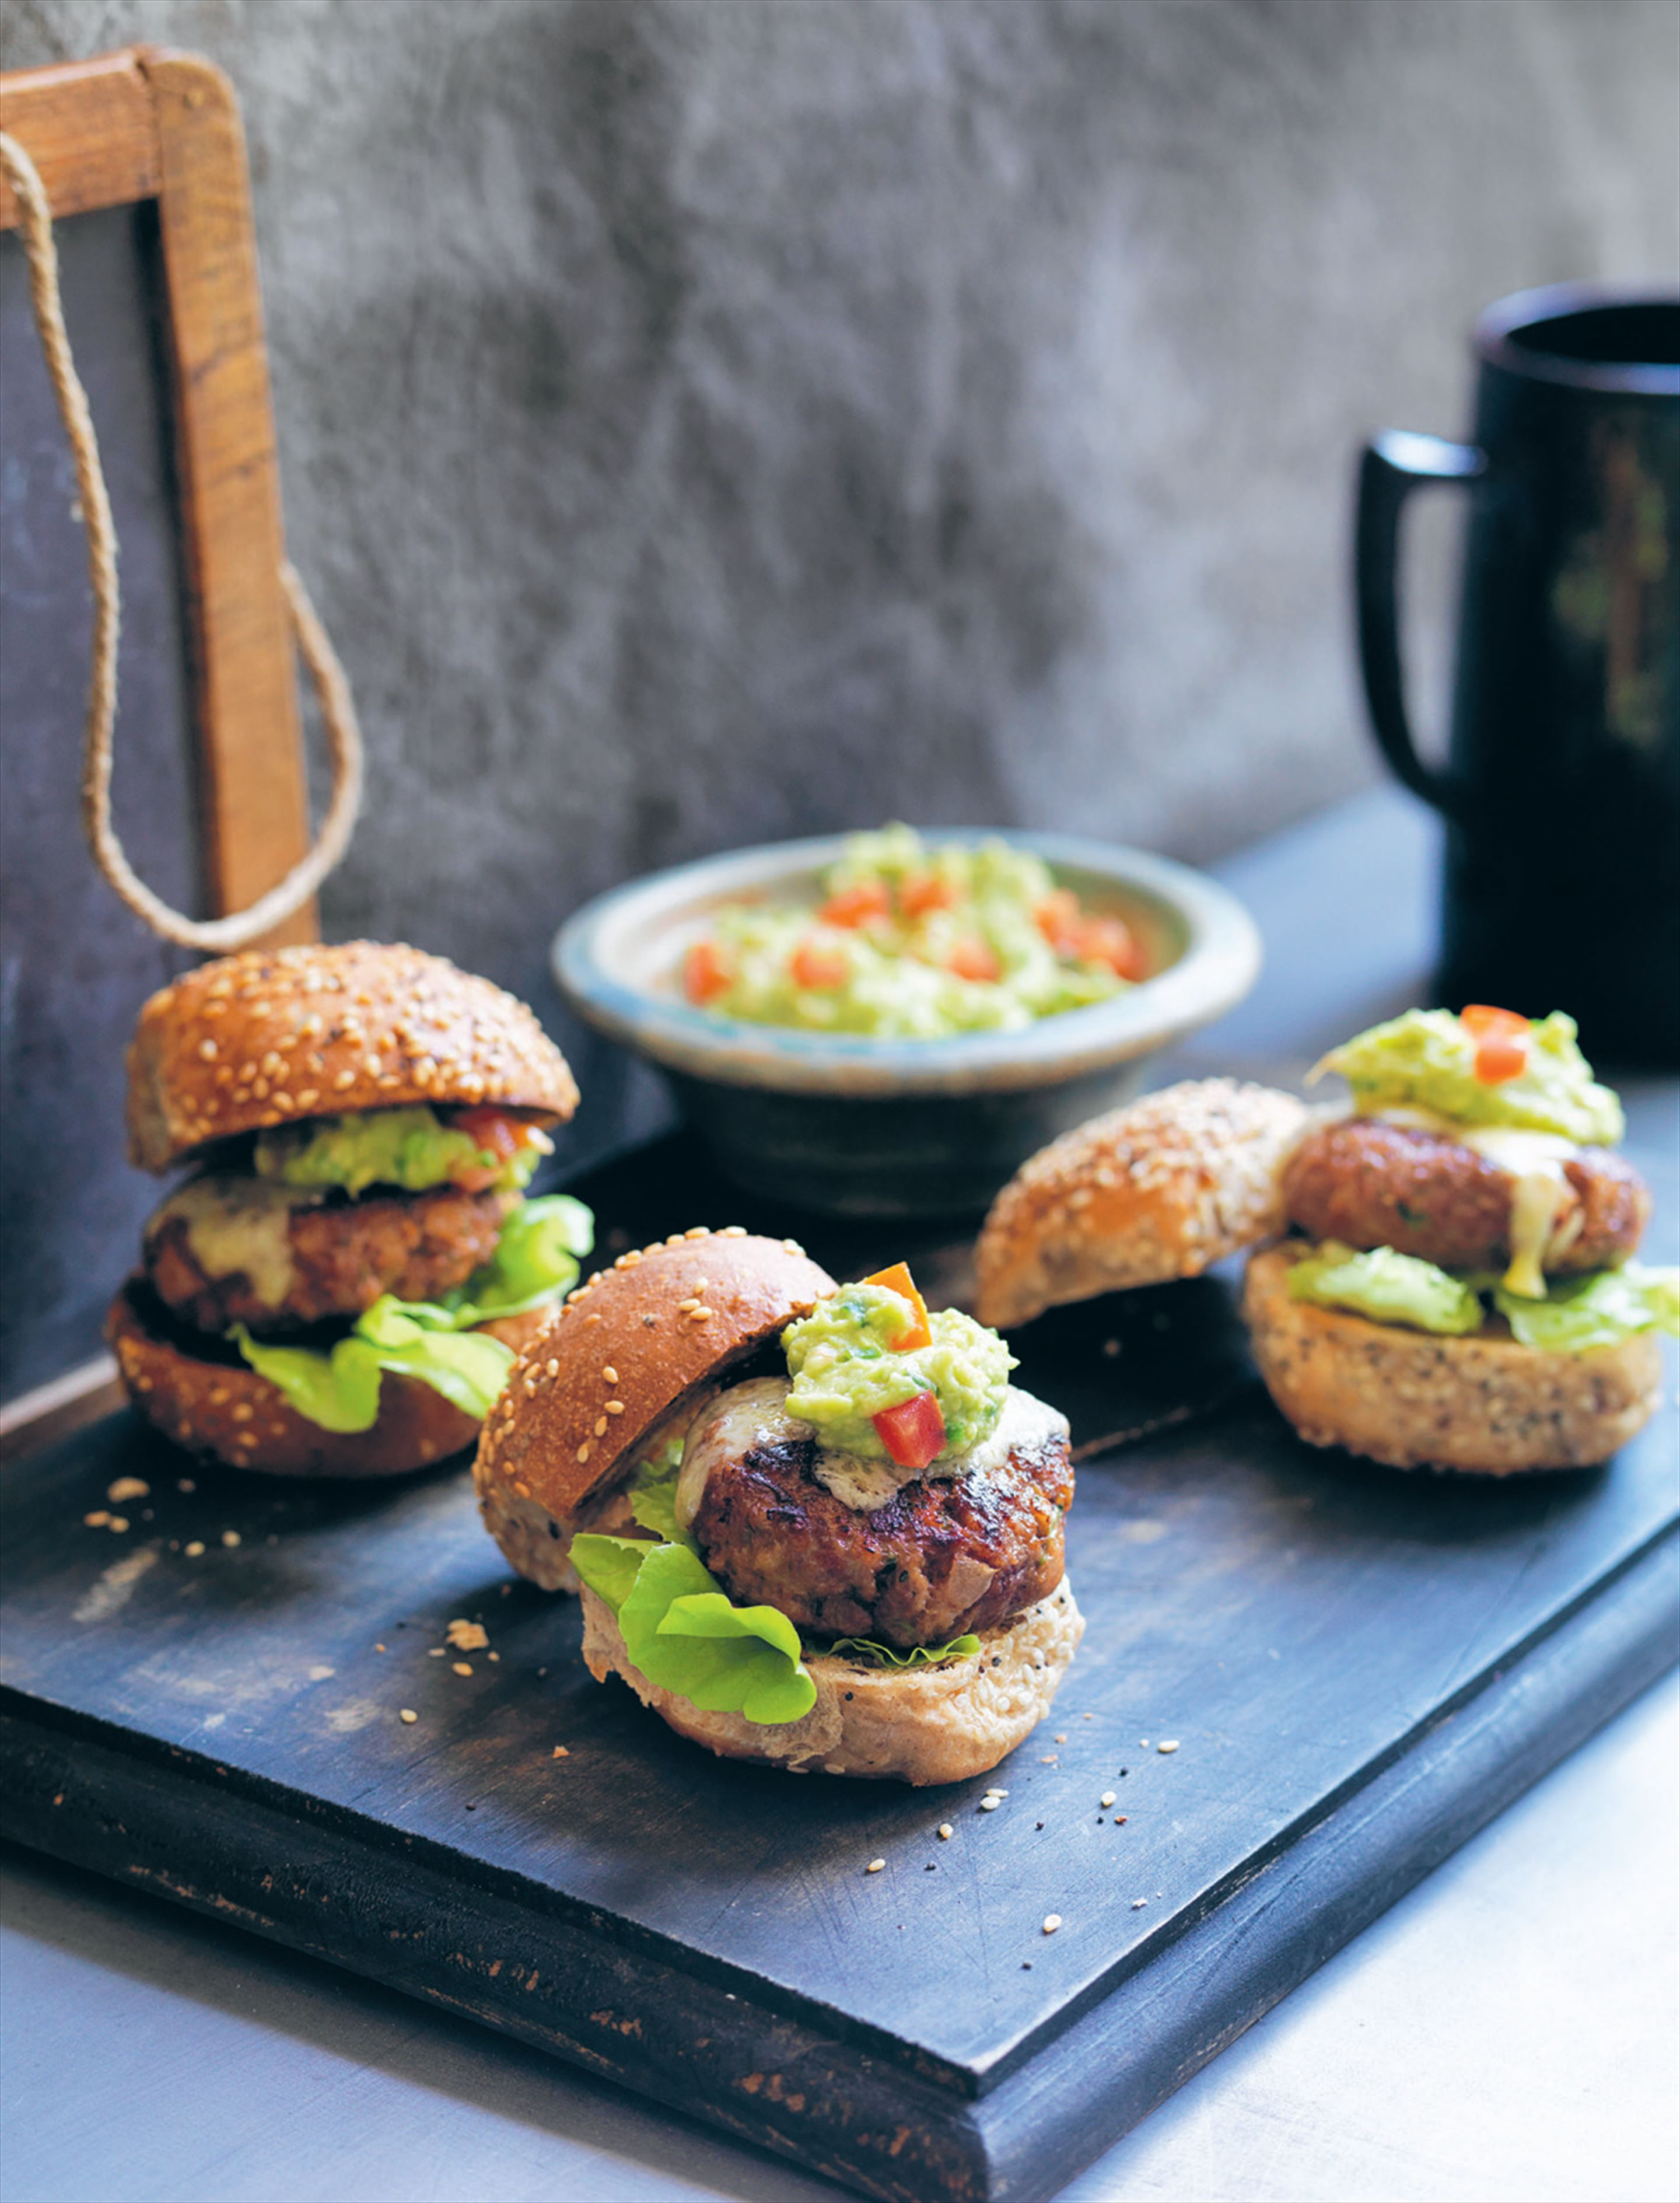 Mini burgers with guacamole